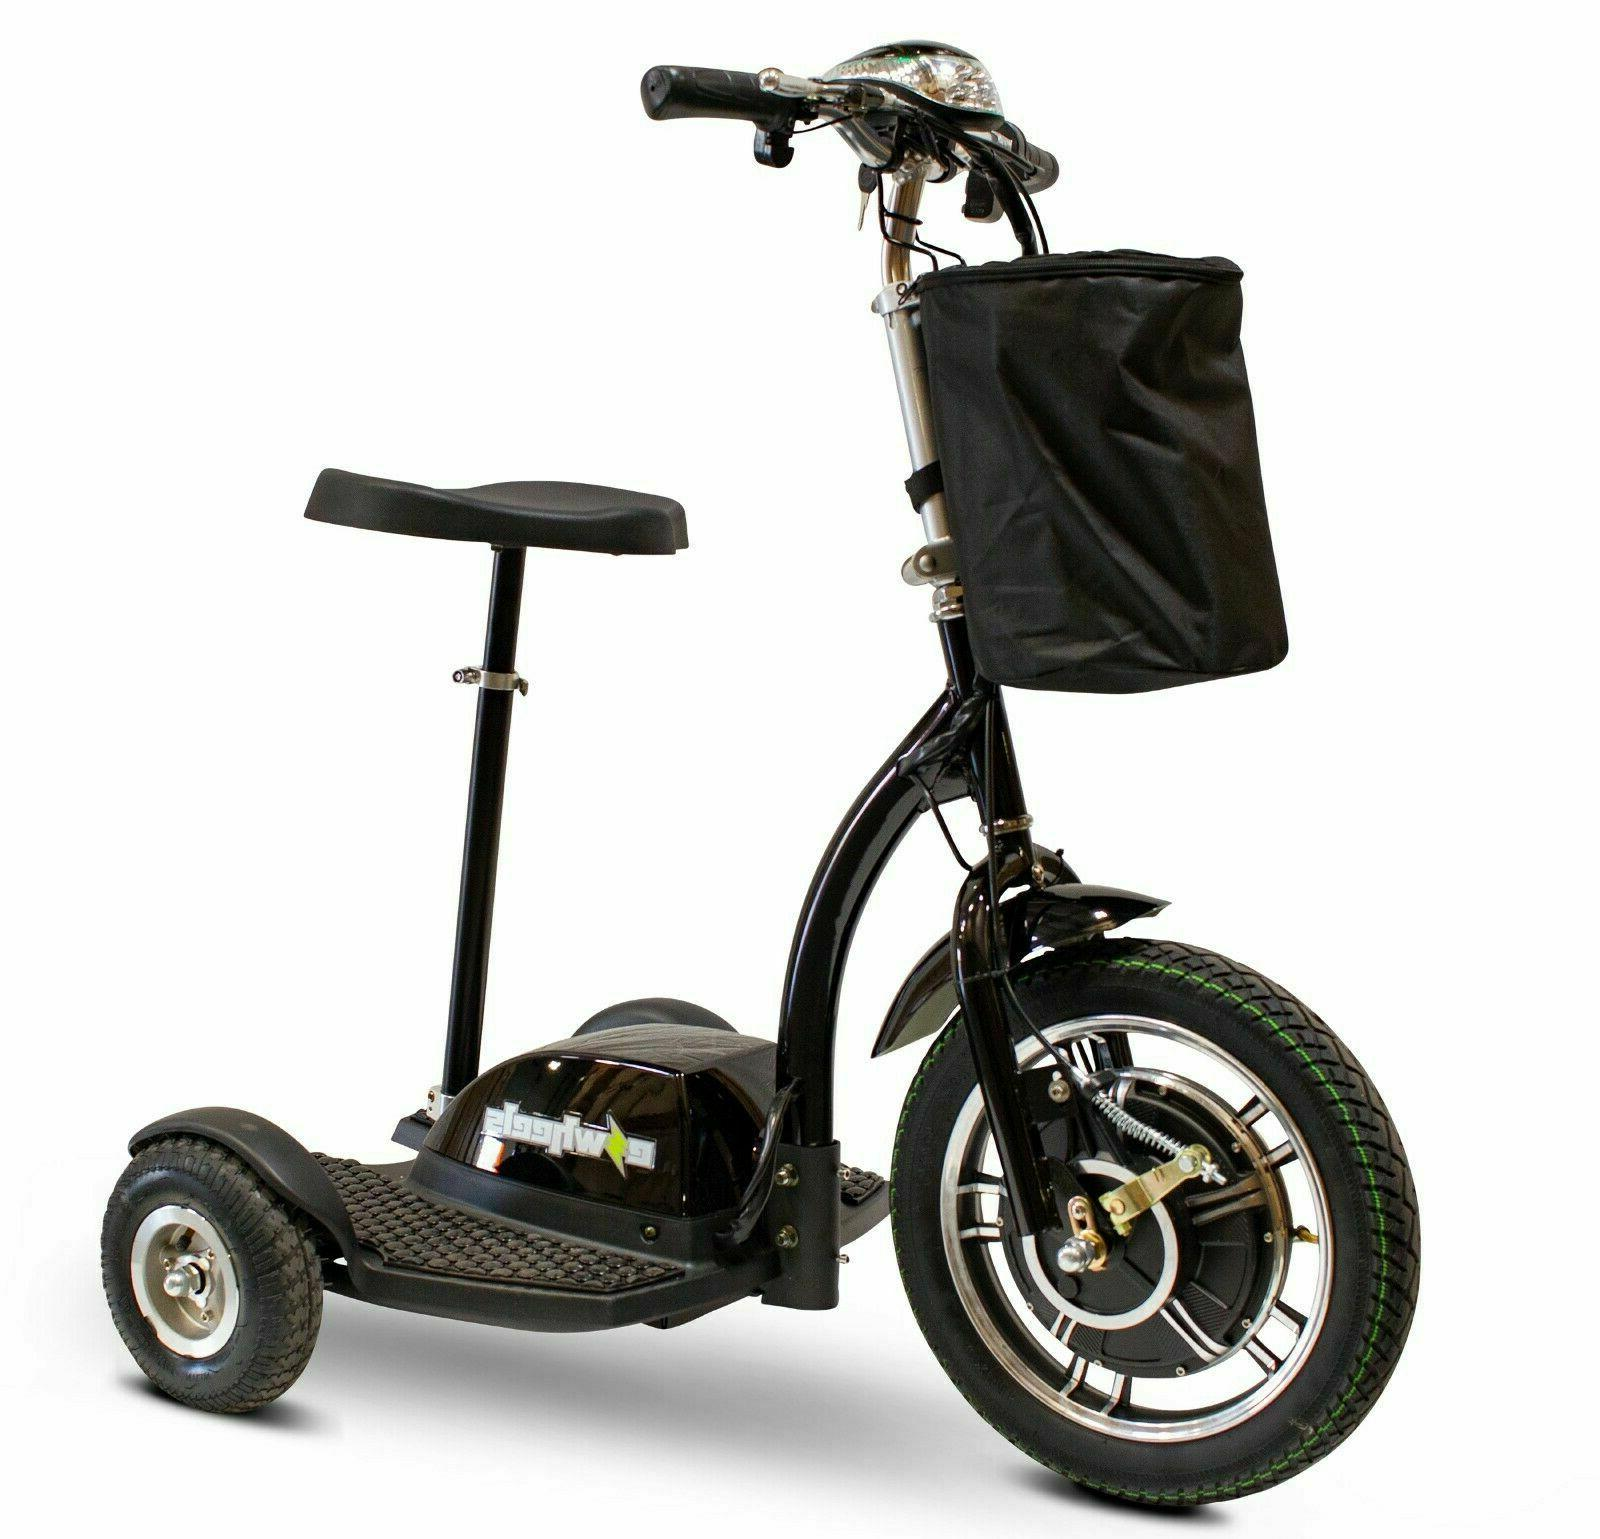 electric trike ew 18 mobility scooter 350w